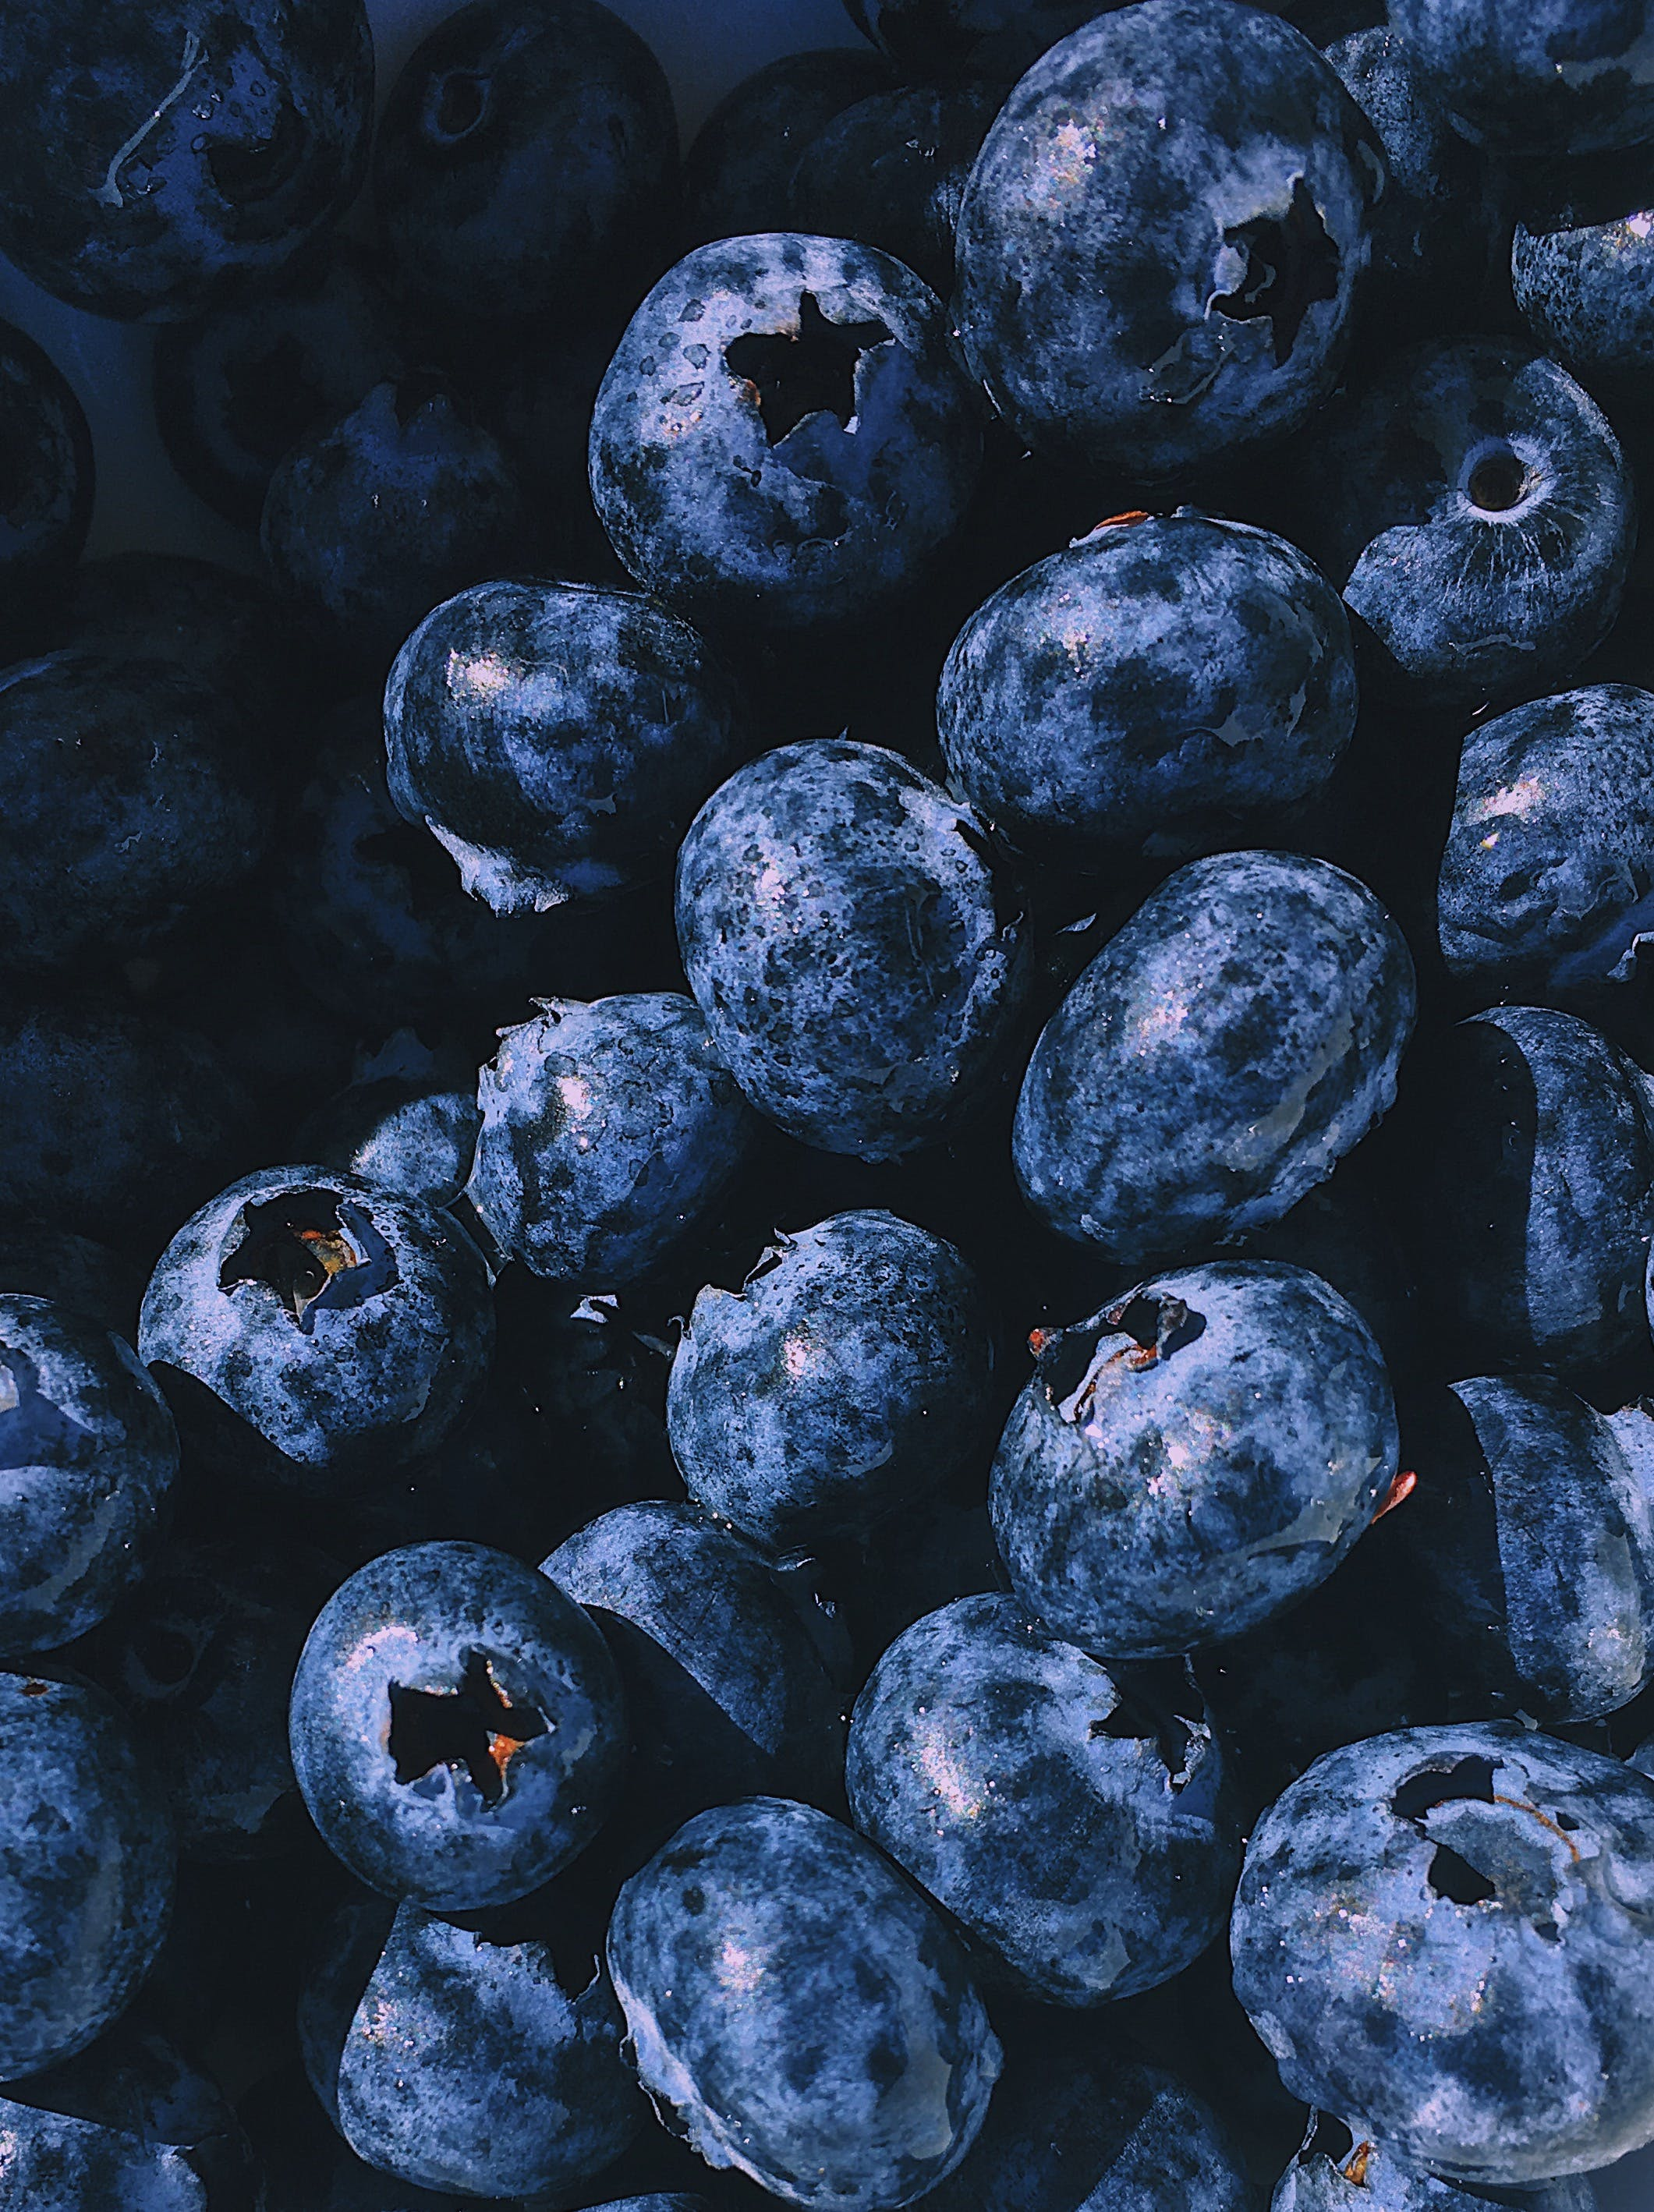 Free stock photo of food, healthy, blueberries, sweet